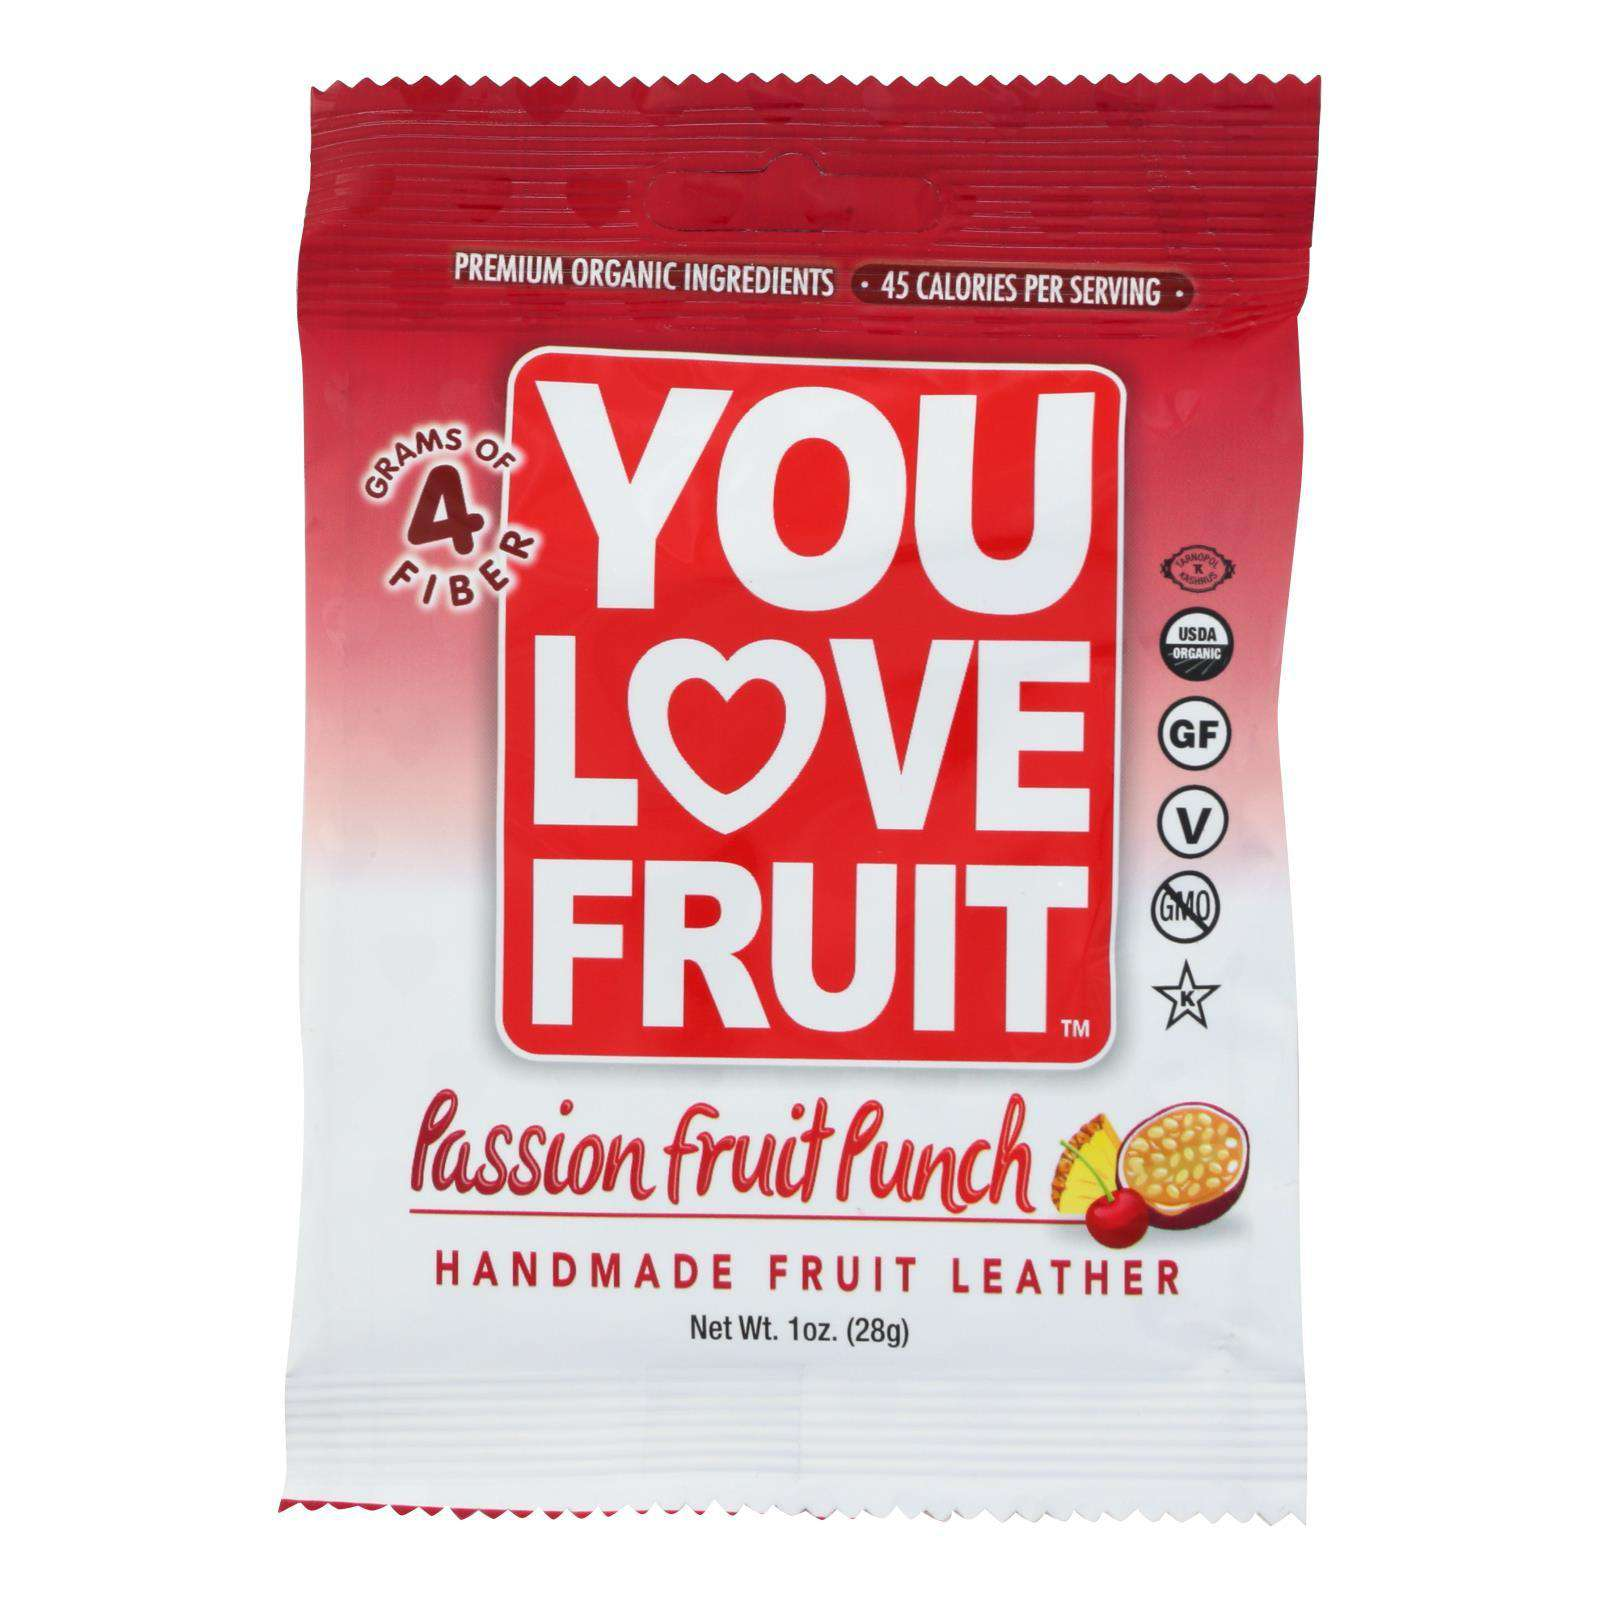 You Love Fruit - Organic Fruit Leather - Passion Fruit Punch - Case Of 12 - 1 Oz. - BeeGreen